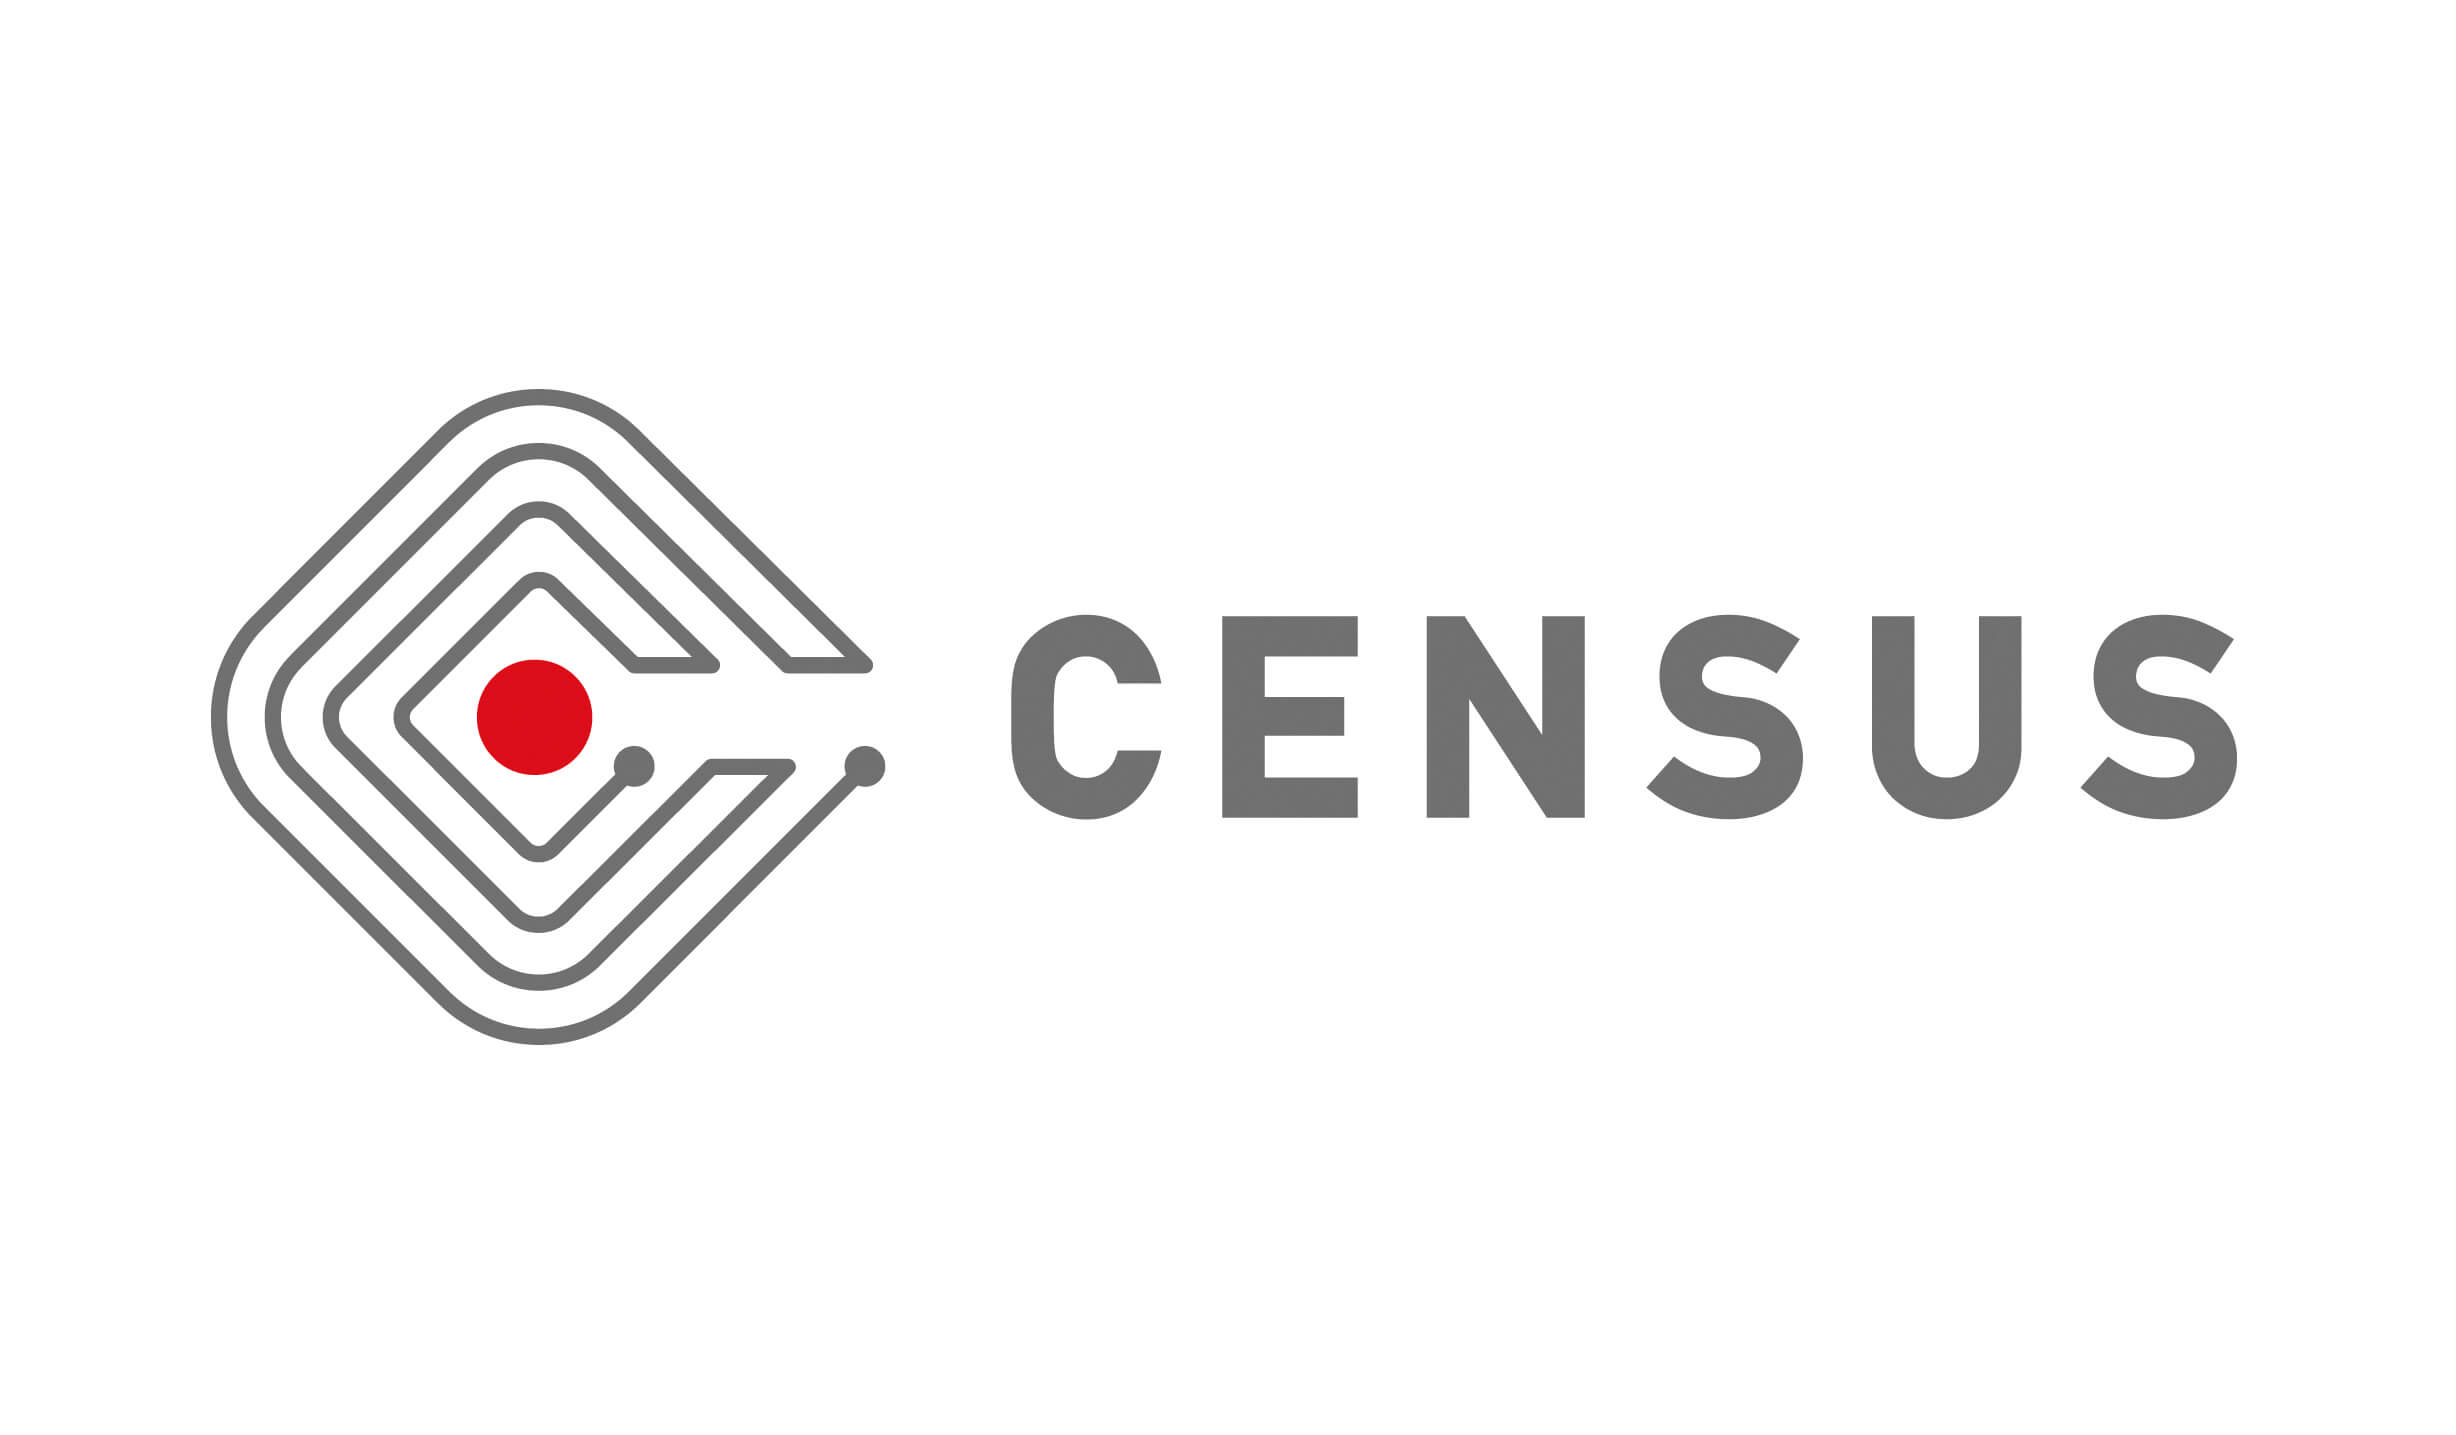 CENSUS S.A.